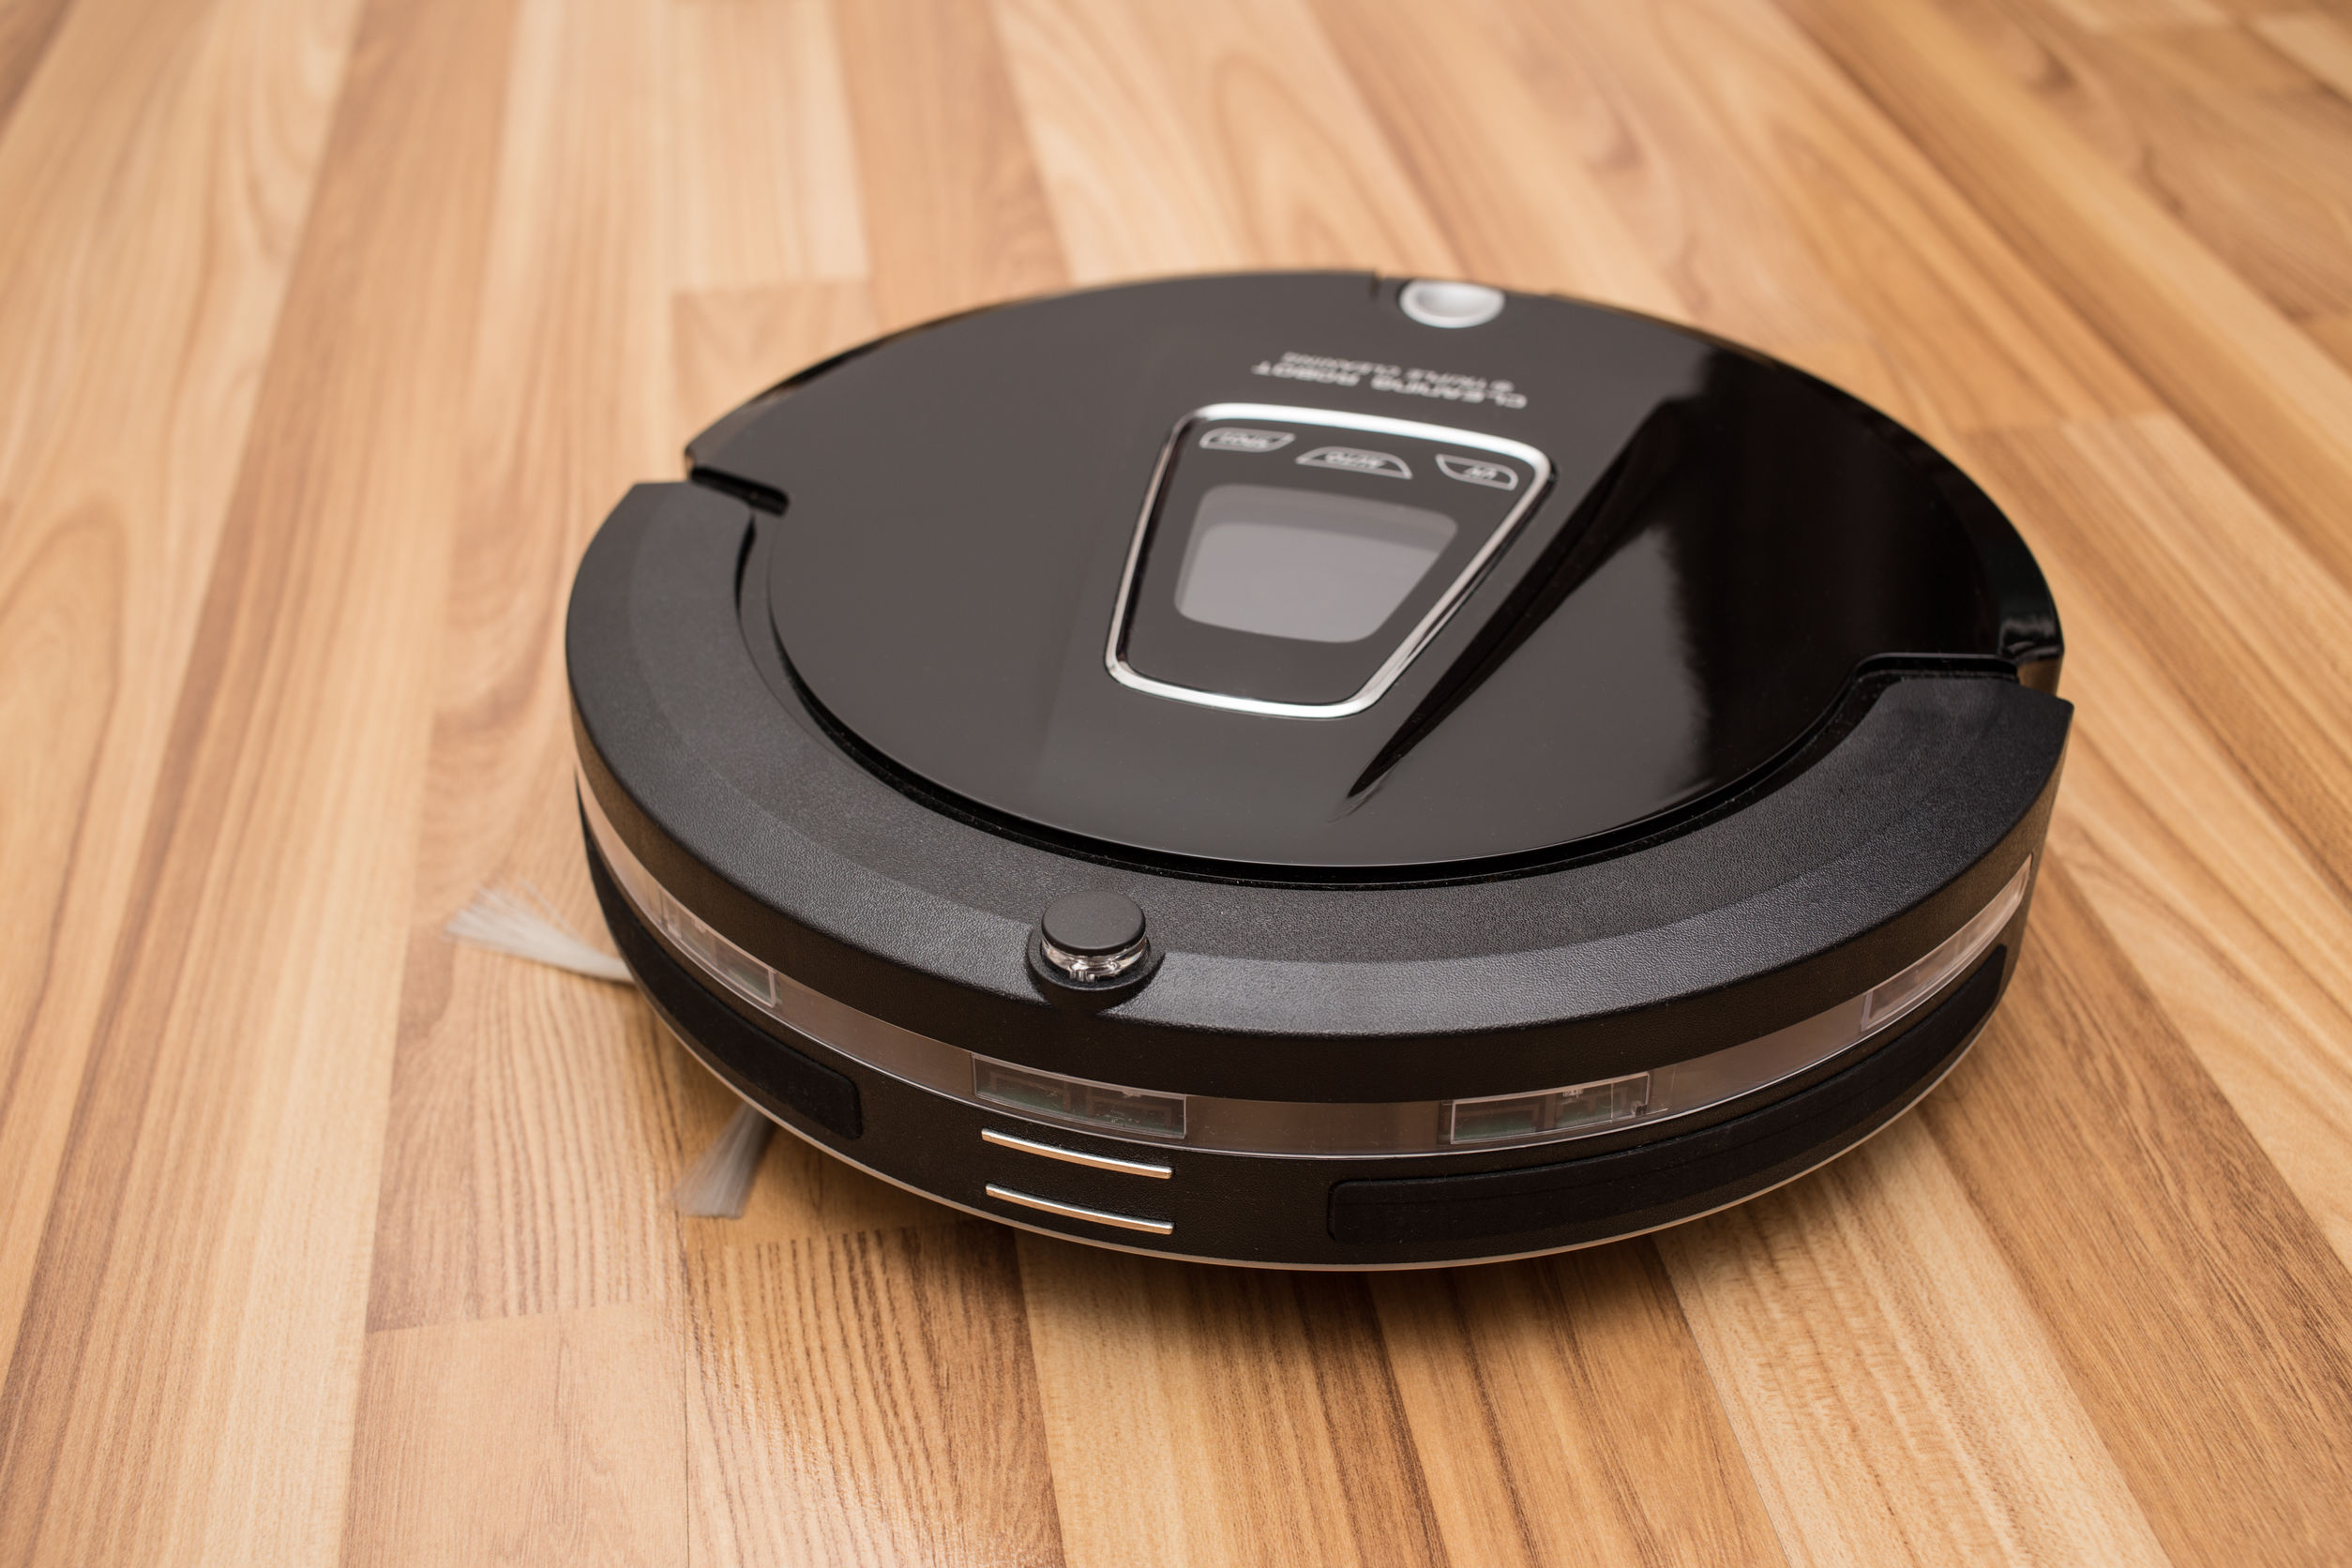 Best Robot Vacuum 2020: Shopping Guide & Review